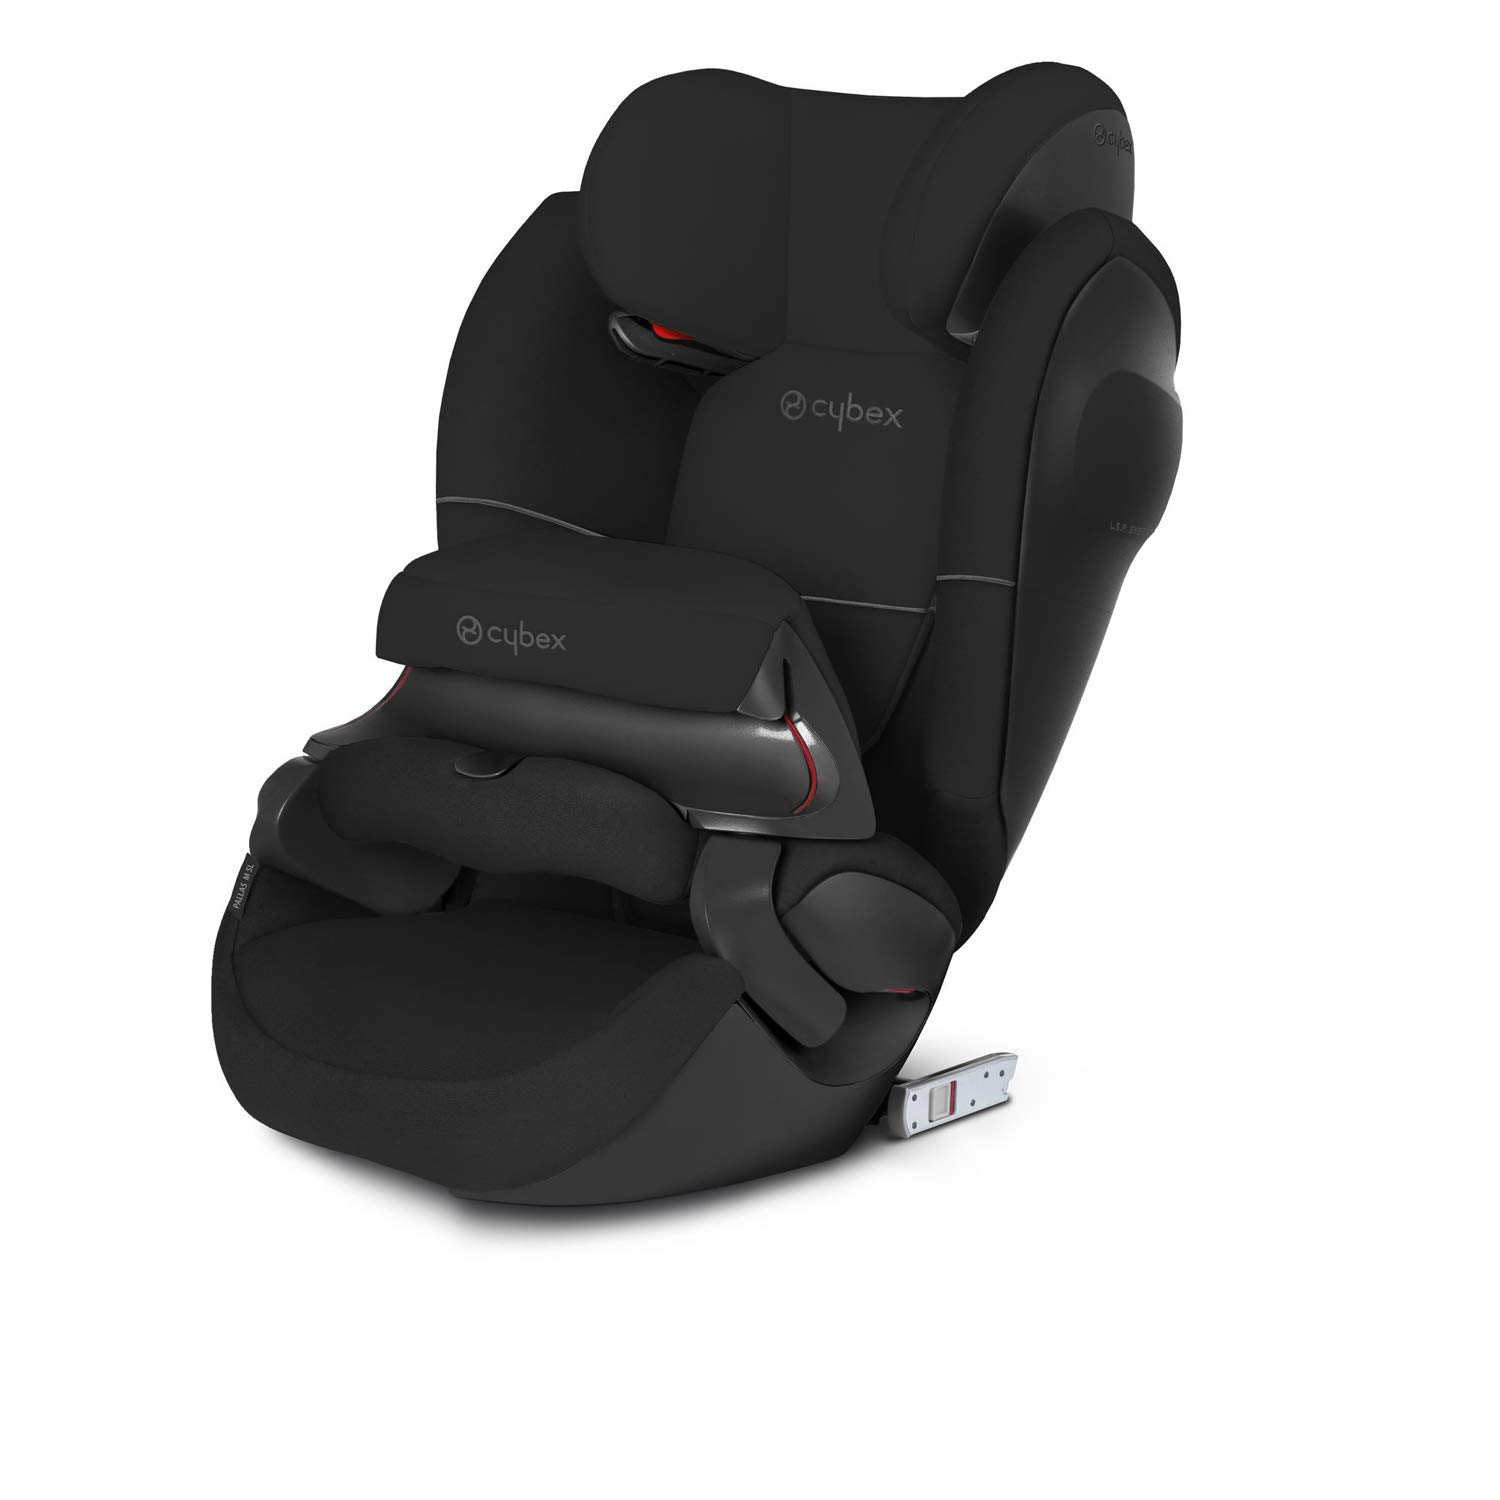 Cybex Silver Pallas M-Fix SL, 2-in-1 Child's Car Seat, High Back Booster, Adjustable Impact Safety Shield and ISOFIX Compatible, Group 1/2/3 (9-36 kg), From Approx 9 Months - 12 Years, Pure Black